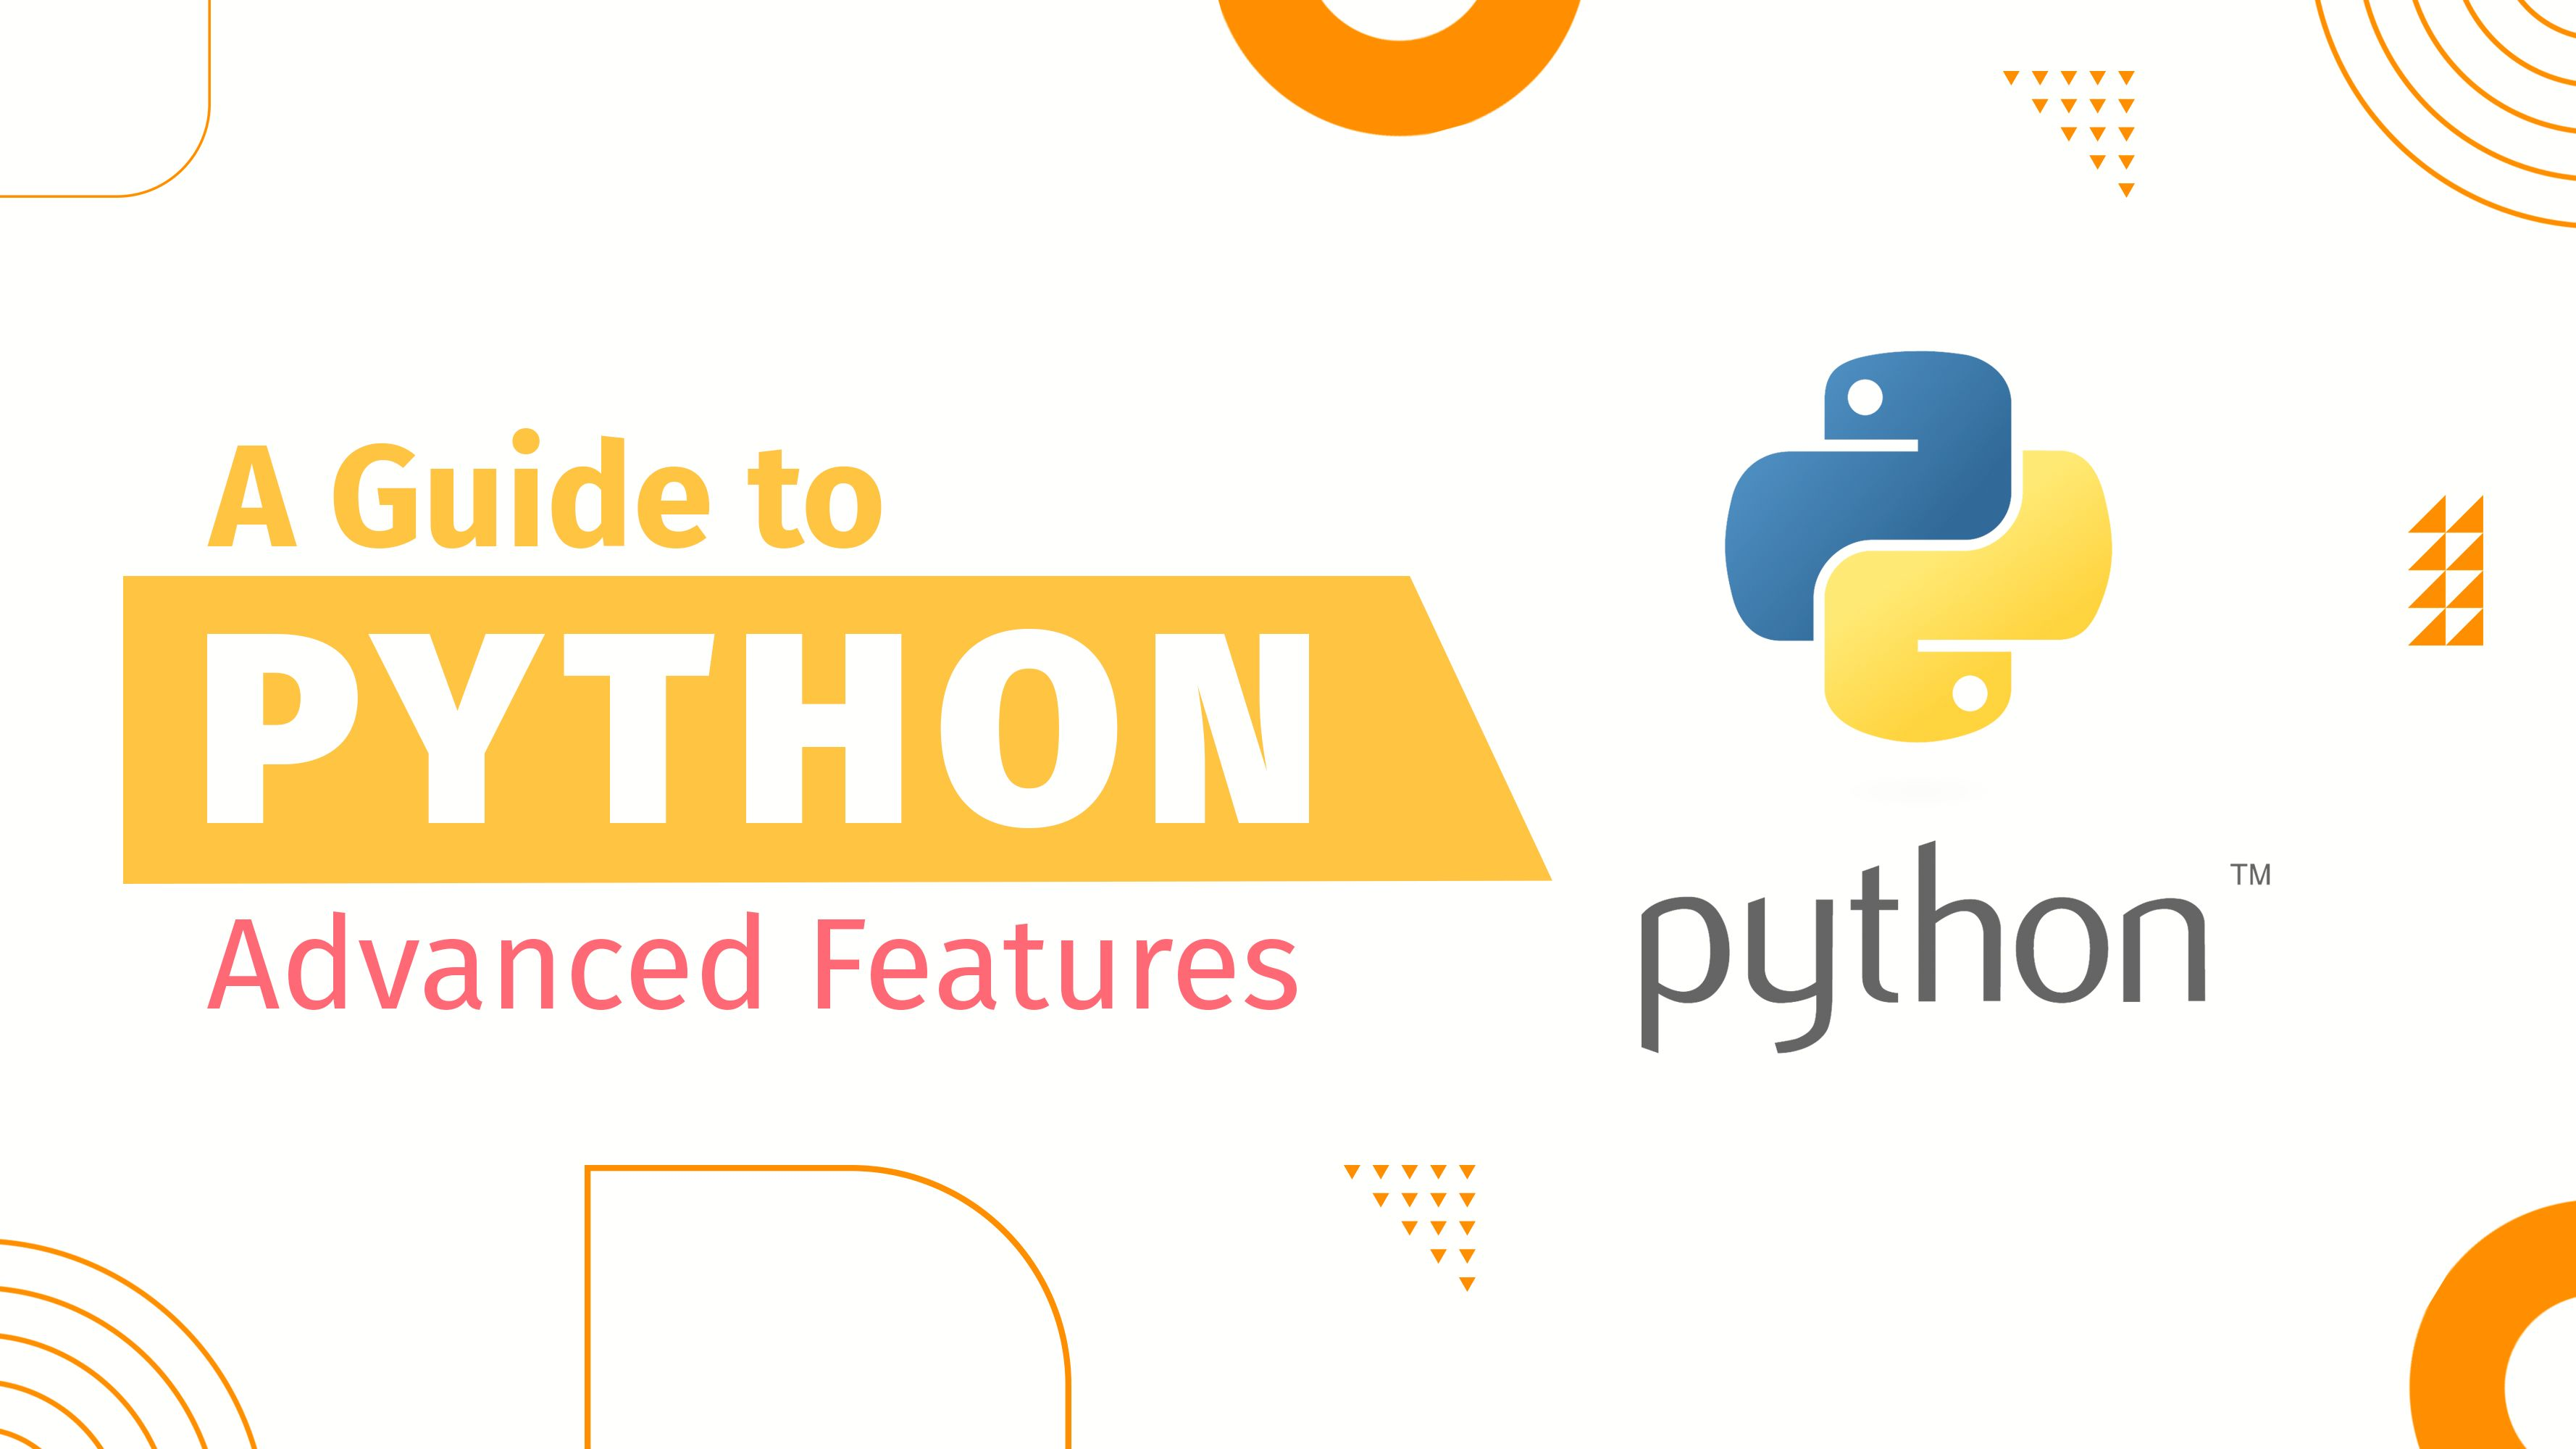 /a-guide-to-python-advanced-features-02z31ly feature image